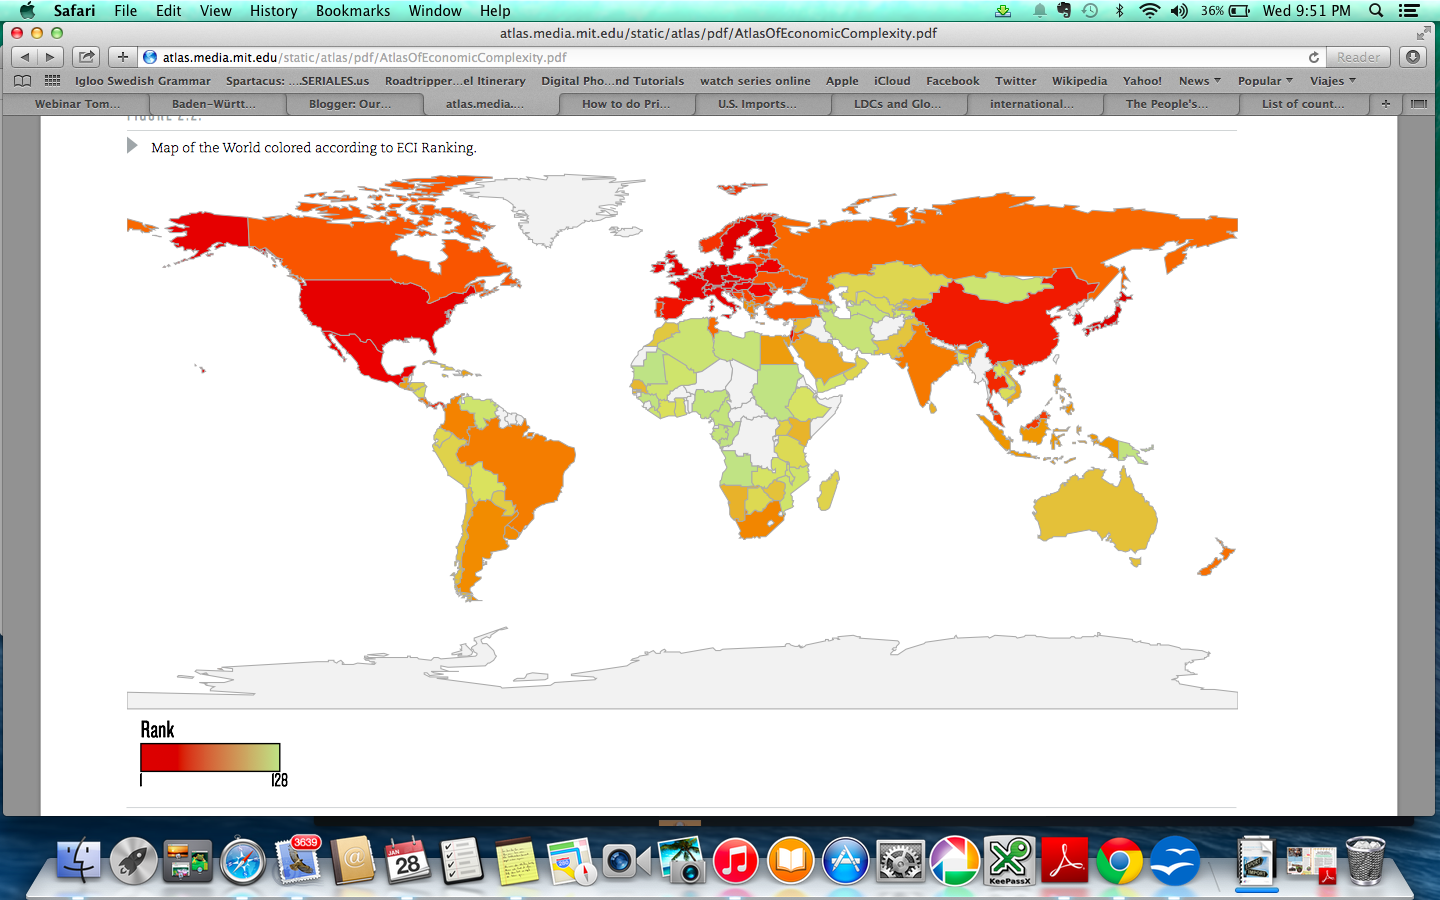 below you can see the world map colored with the economic complexity index eci ranking the most red colored countries have a higher economic complexity